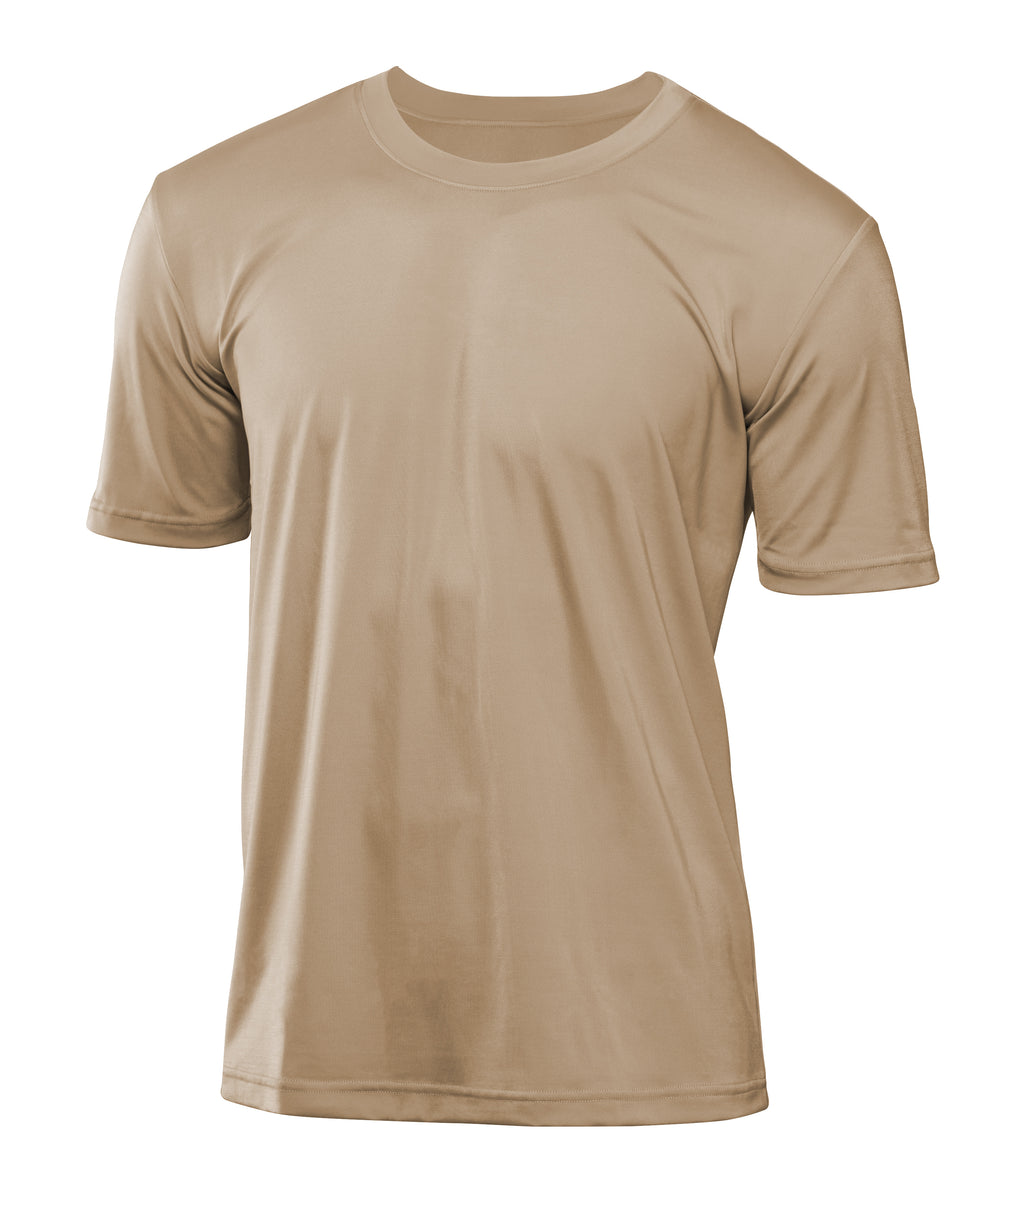 CoreMAX Loose Fit Compression Shirt